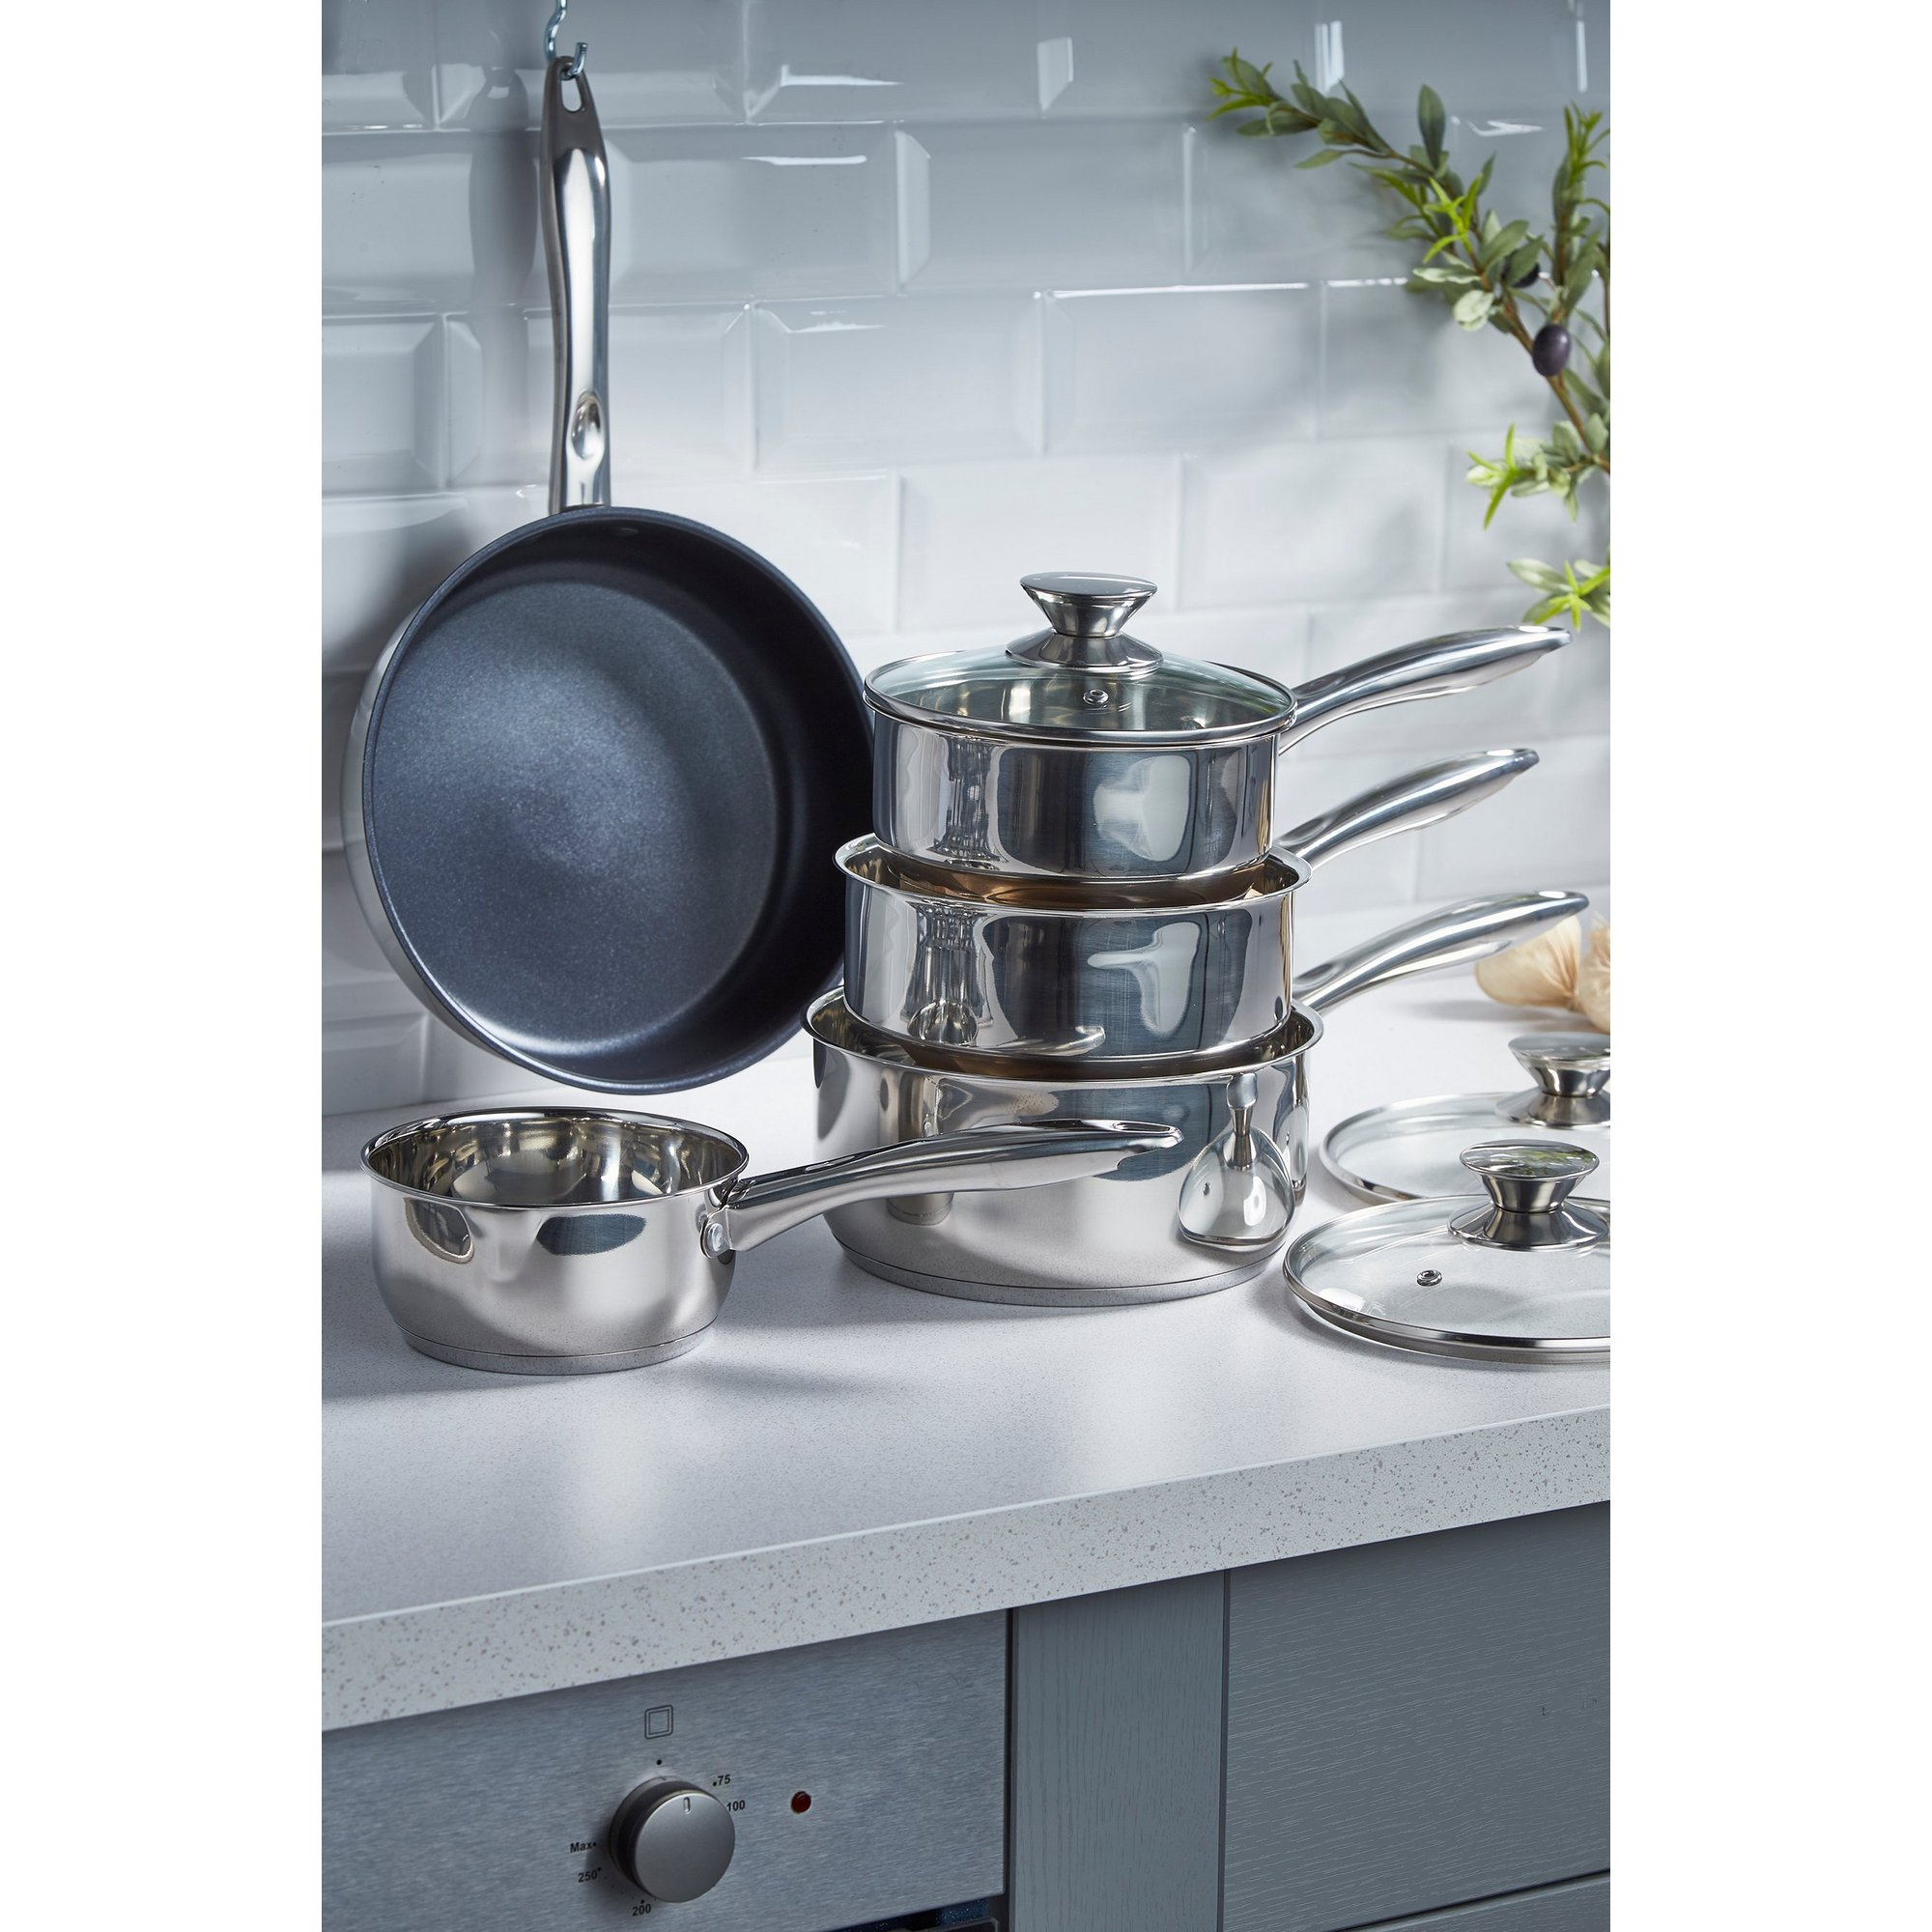 Image of 5-Piece Russell Hobbs Classic Collection Stainless Steel Pan Set